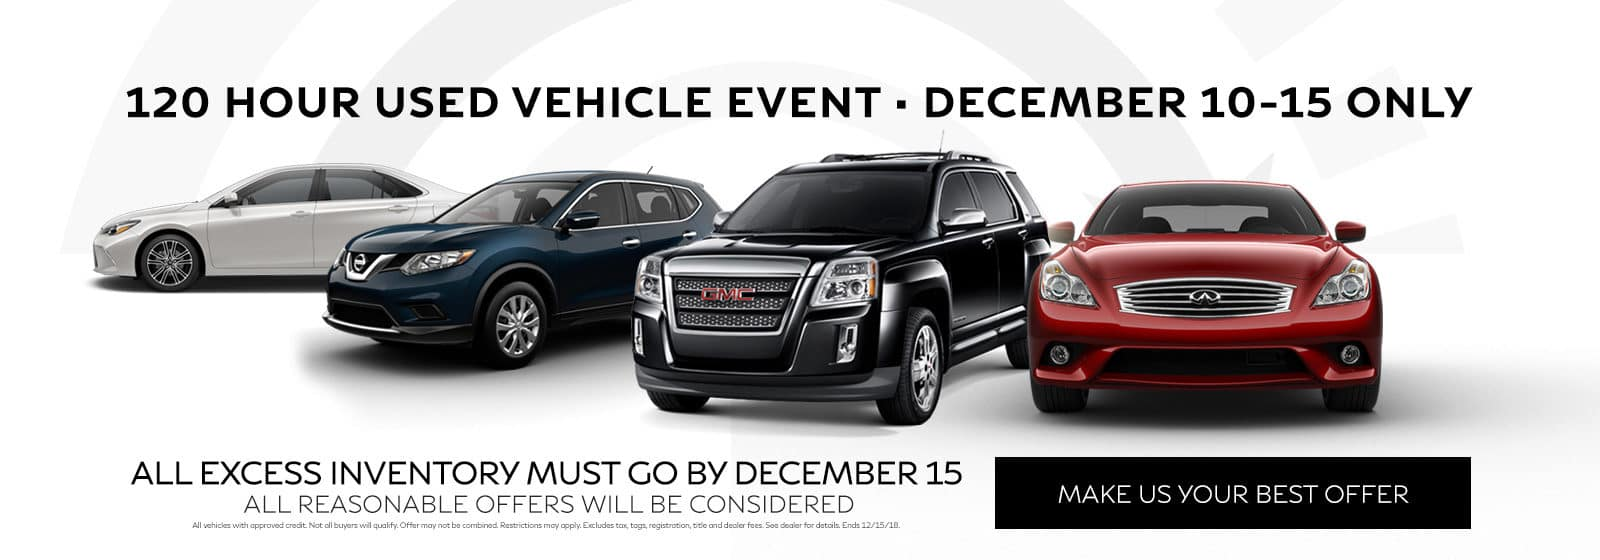 120 Hour used vehicle event - December 10 to 15 only - All excess inventory must go by December 15 - All reasonable offers  will be considered - Make us your best offer